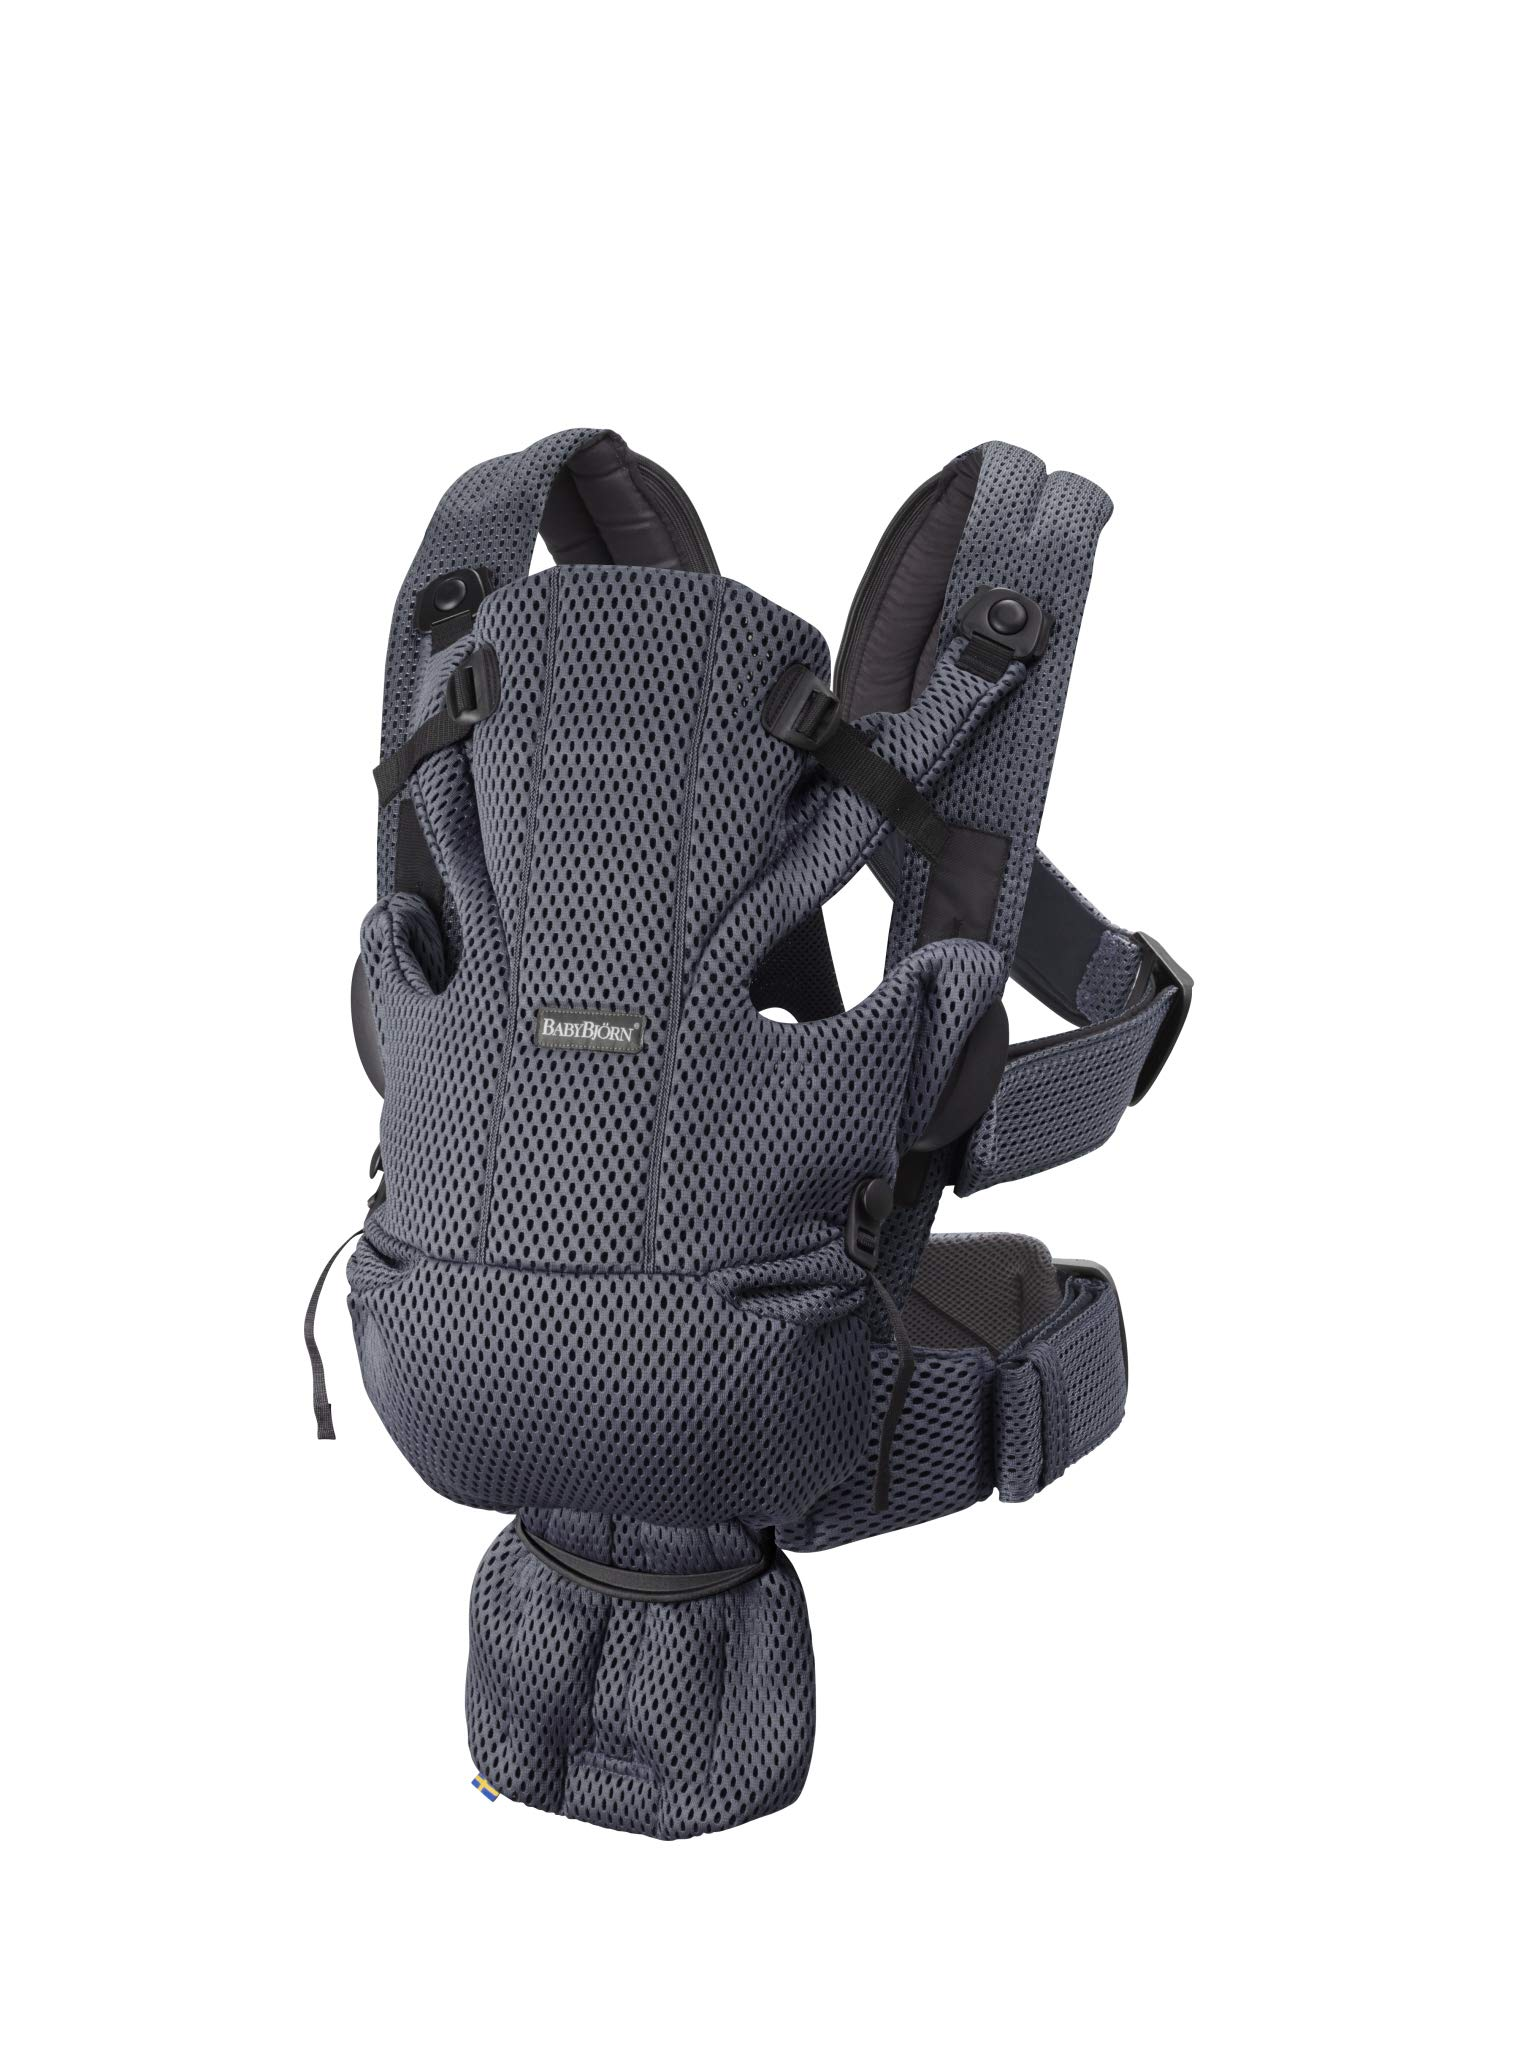 BABYBJÖRN Baby Carrier Move, 3D Mesh, Anthracite Baby Bjorn Excellent comfort with built-in back support and waist belt Easy to put on and take off Soft and airy design in cool 3D mesh 2